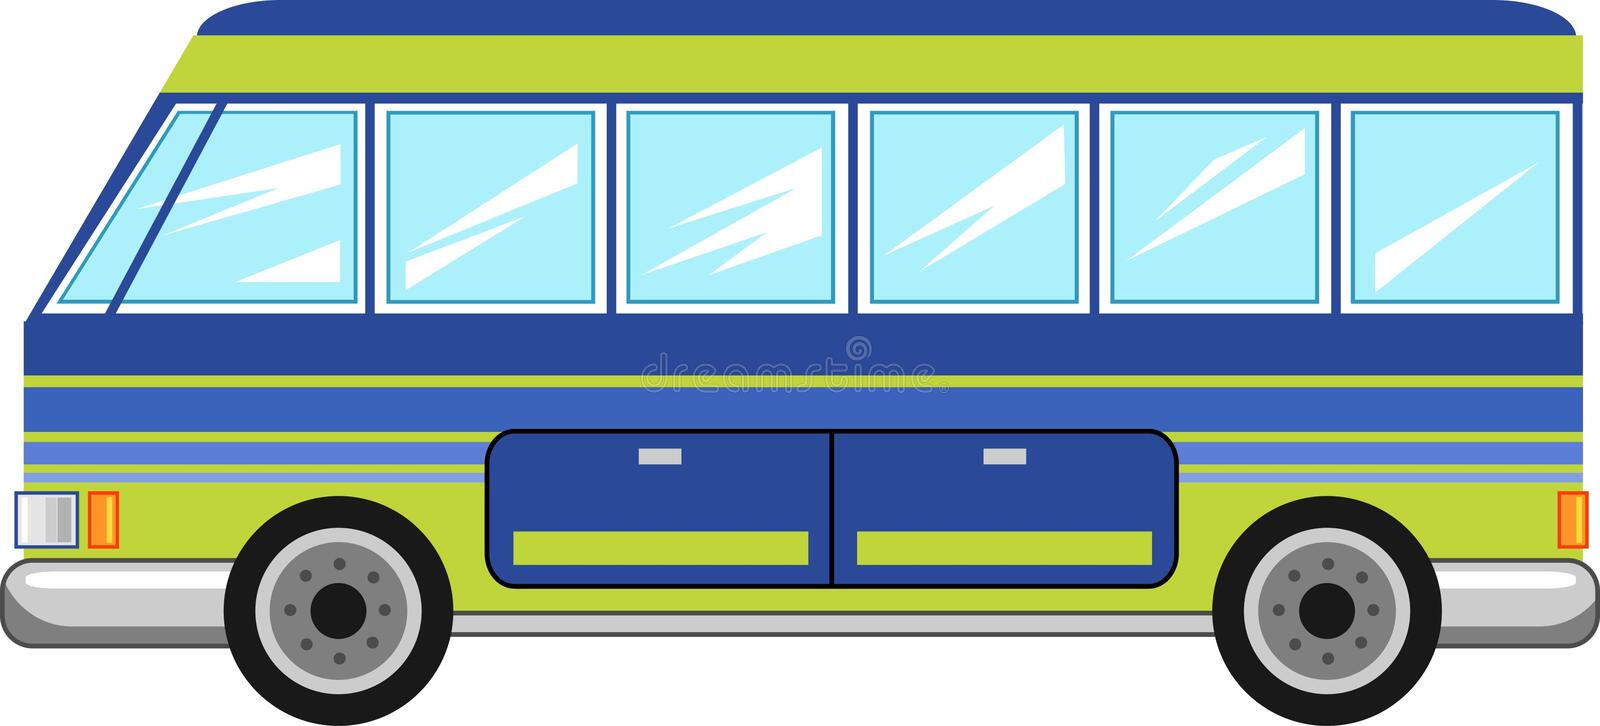 Bus royalty free illustration